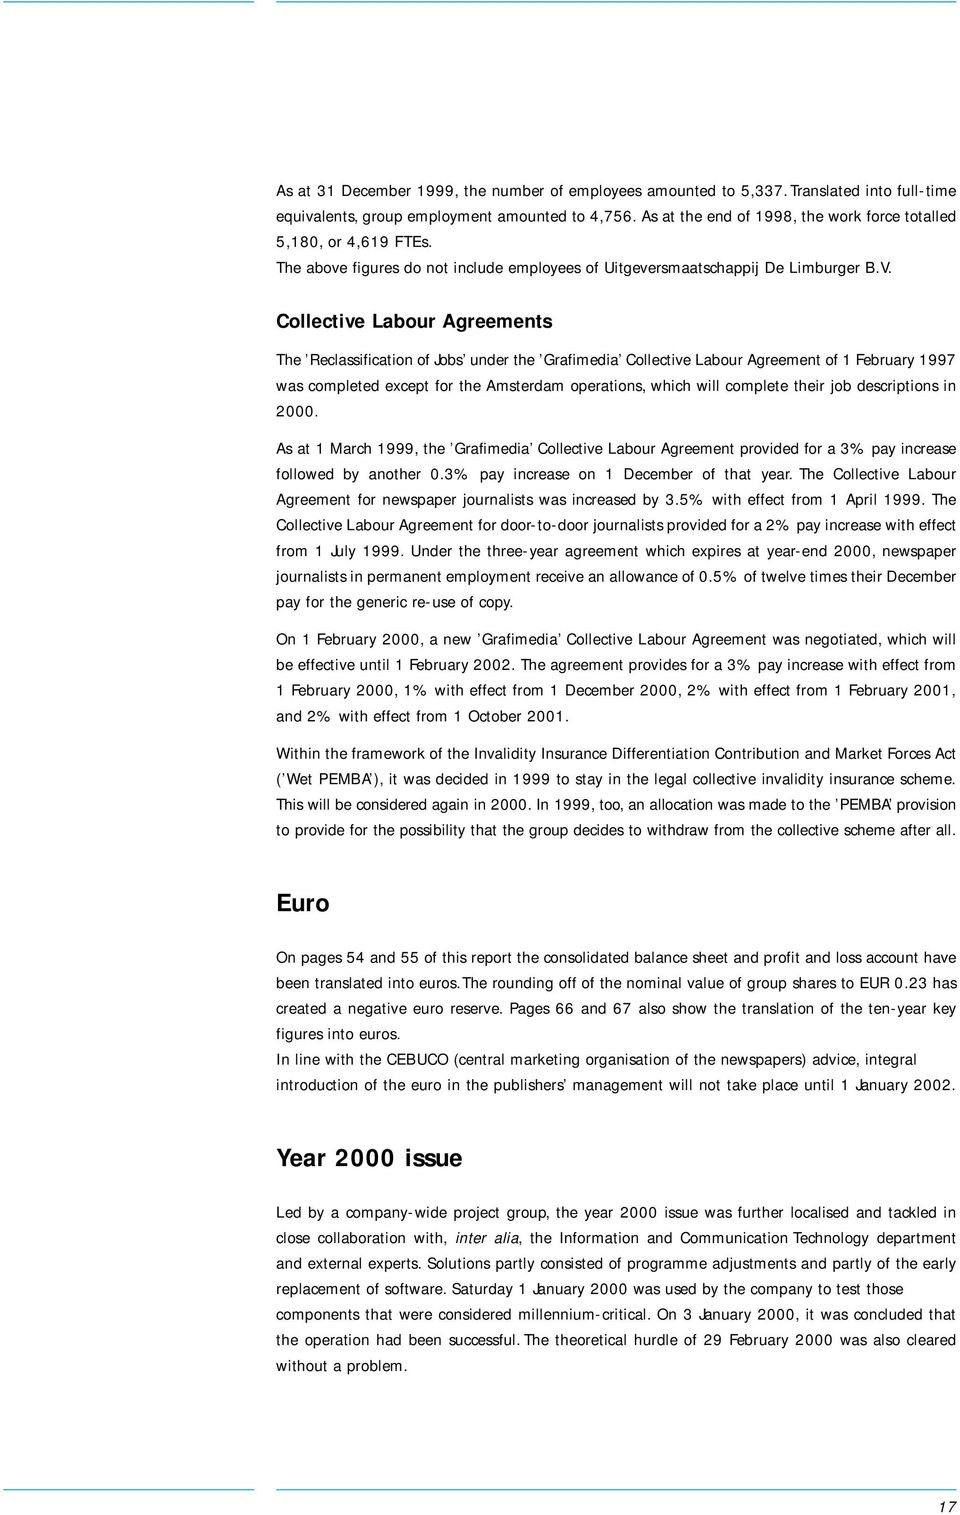 Collective Labour Agreements The Reclassification of Jobs under the Grafimedia Collective Labour Agreement of 1 February 1997 was completed except for the Amsterdam operations, which will complete